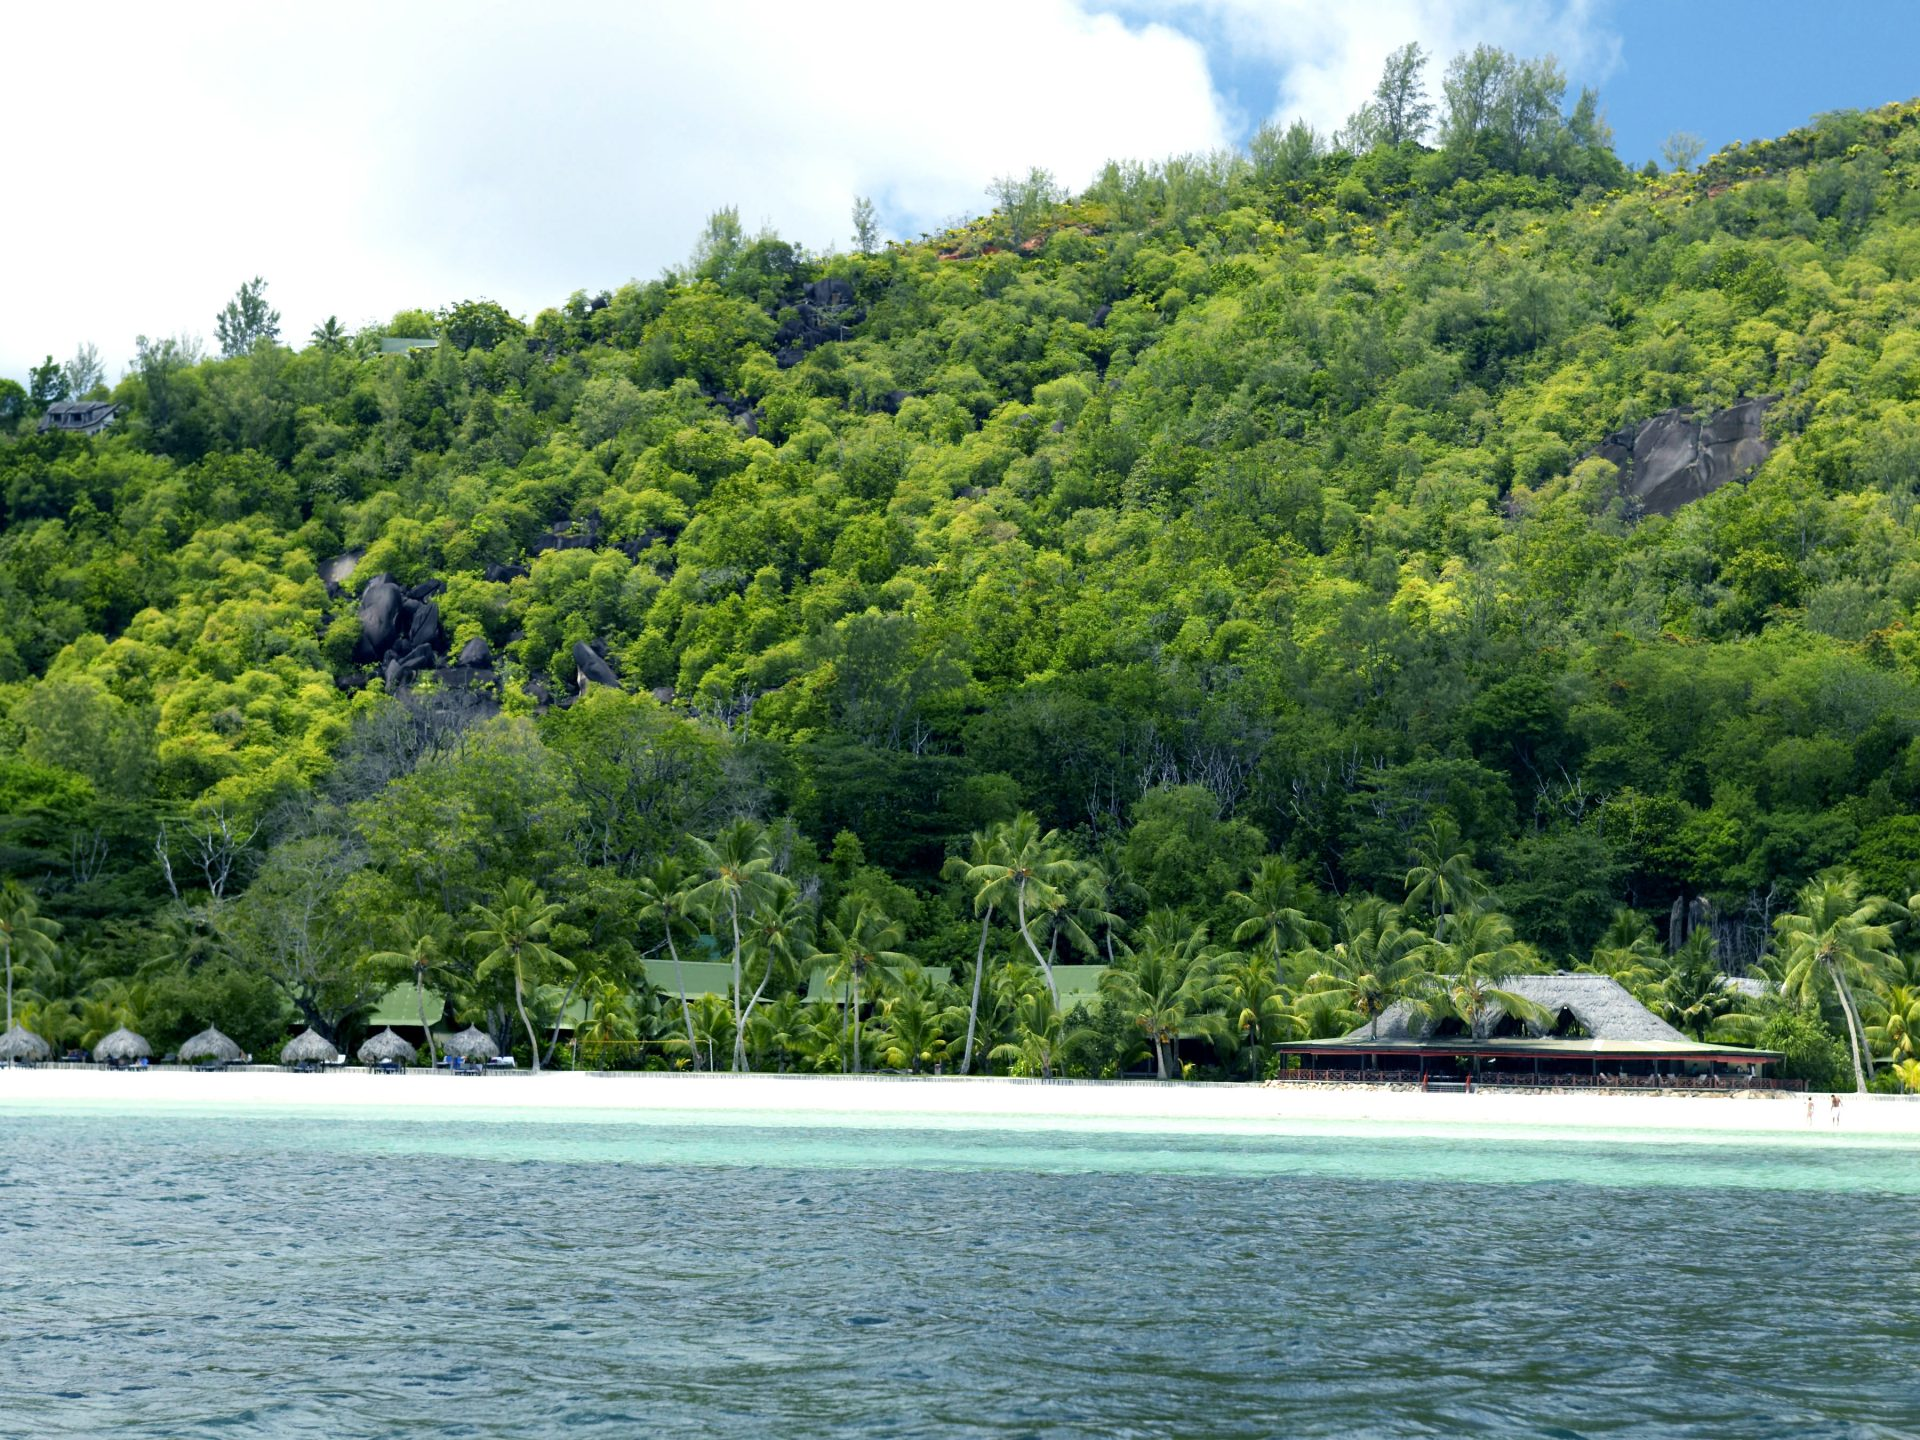 View Of A Beach With Tropical Vegetation